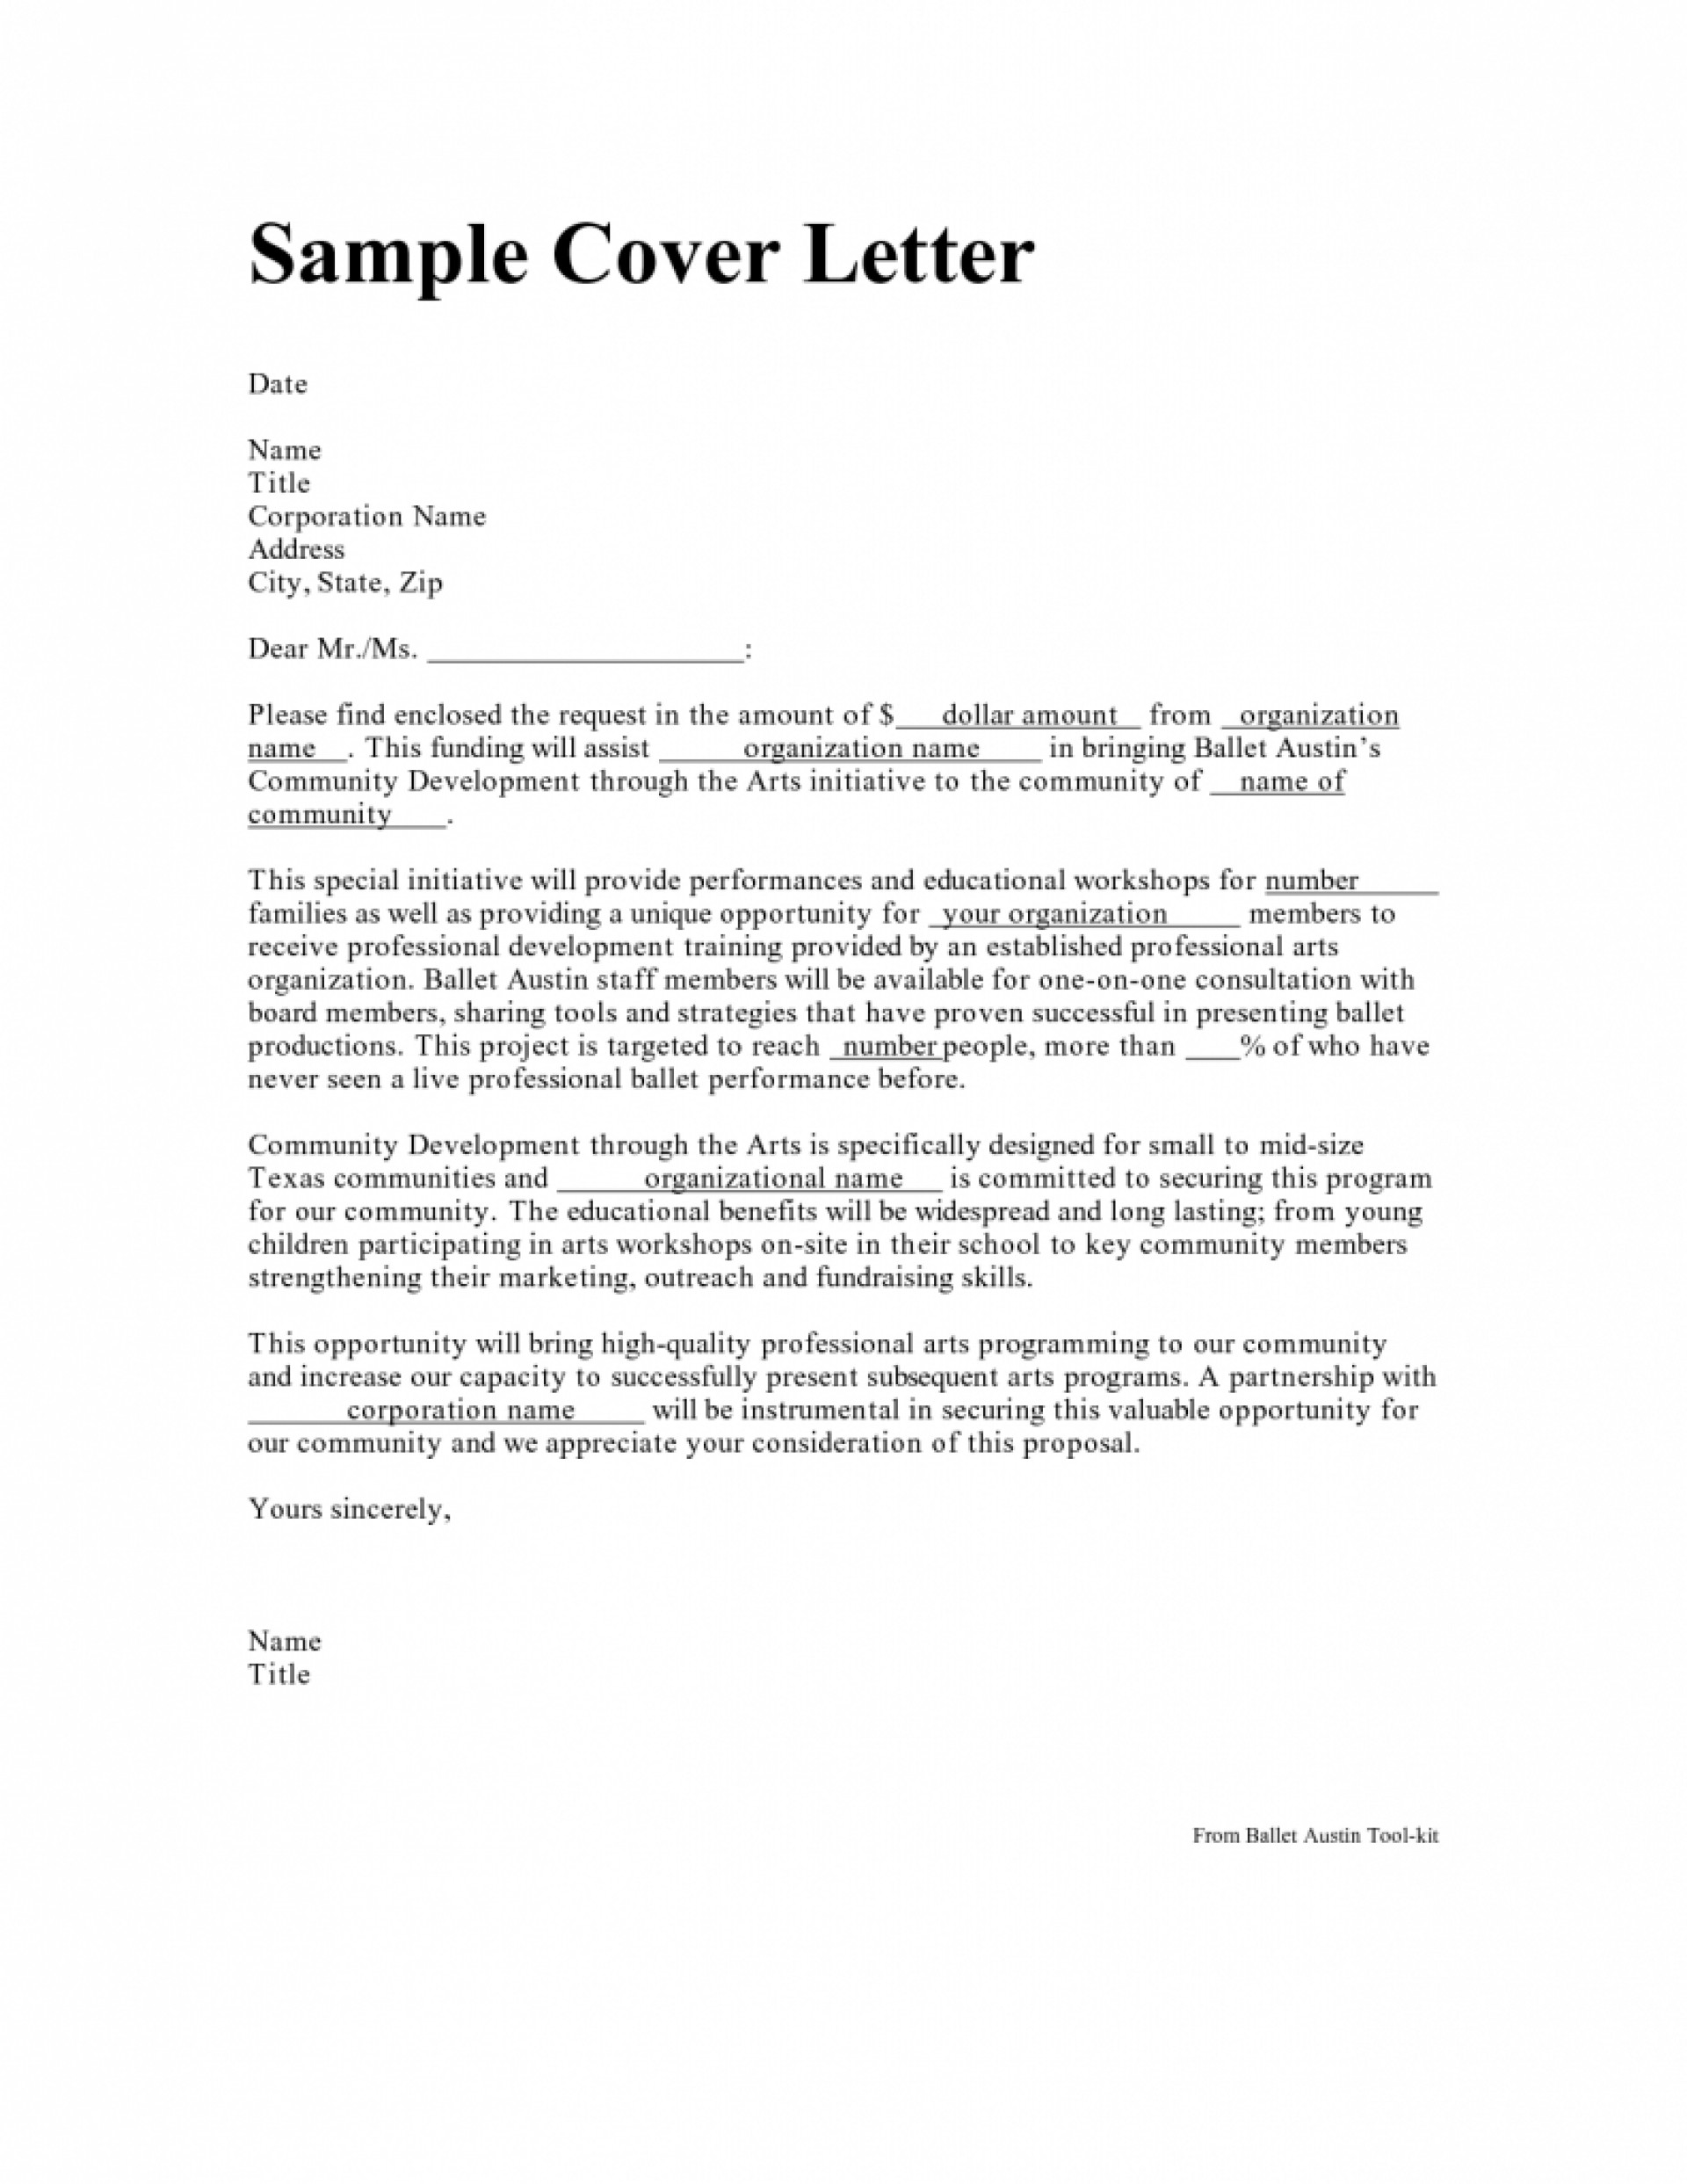 001 Essay Example Cover Letter For Singular Competition Scientific Paper Submission College 1920